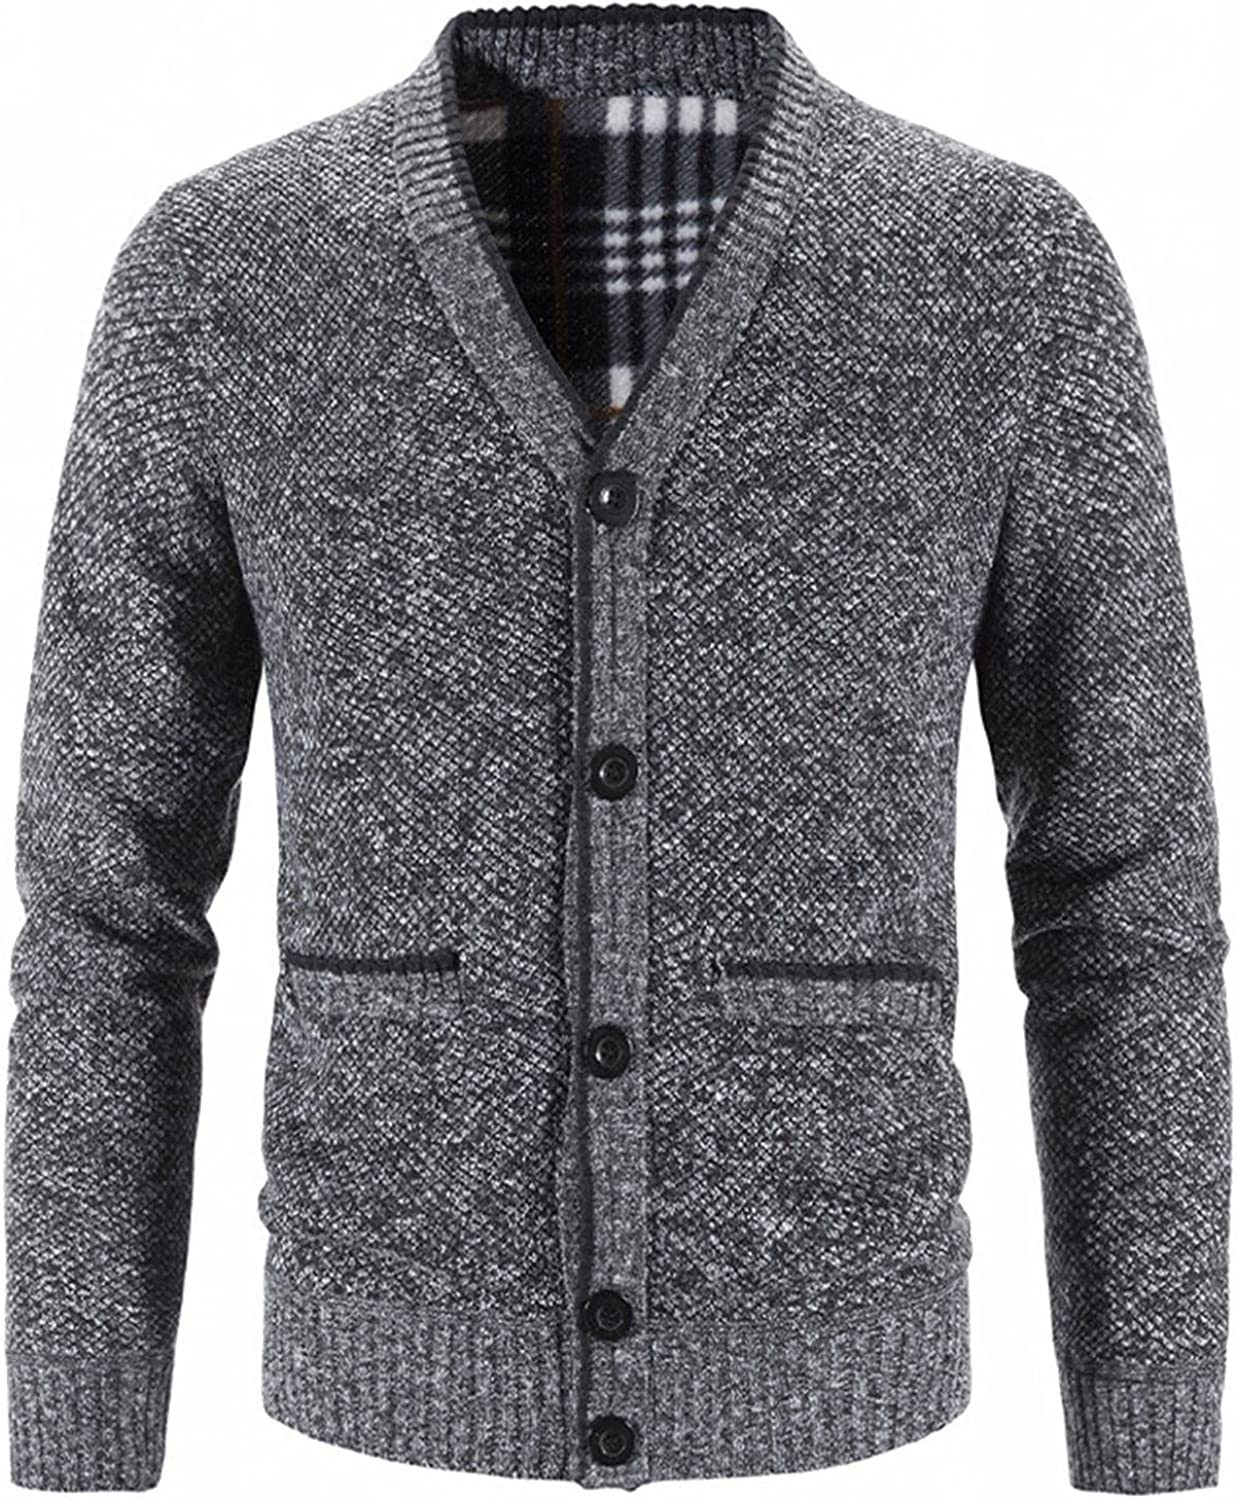 Mens Casual Lowest price challenge Button Down Cardigan Oakland Mall Sweaters Waffle Knit Slim S Fit